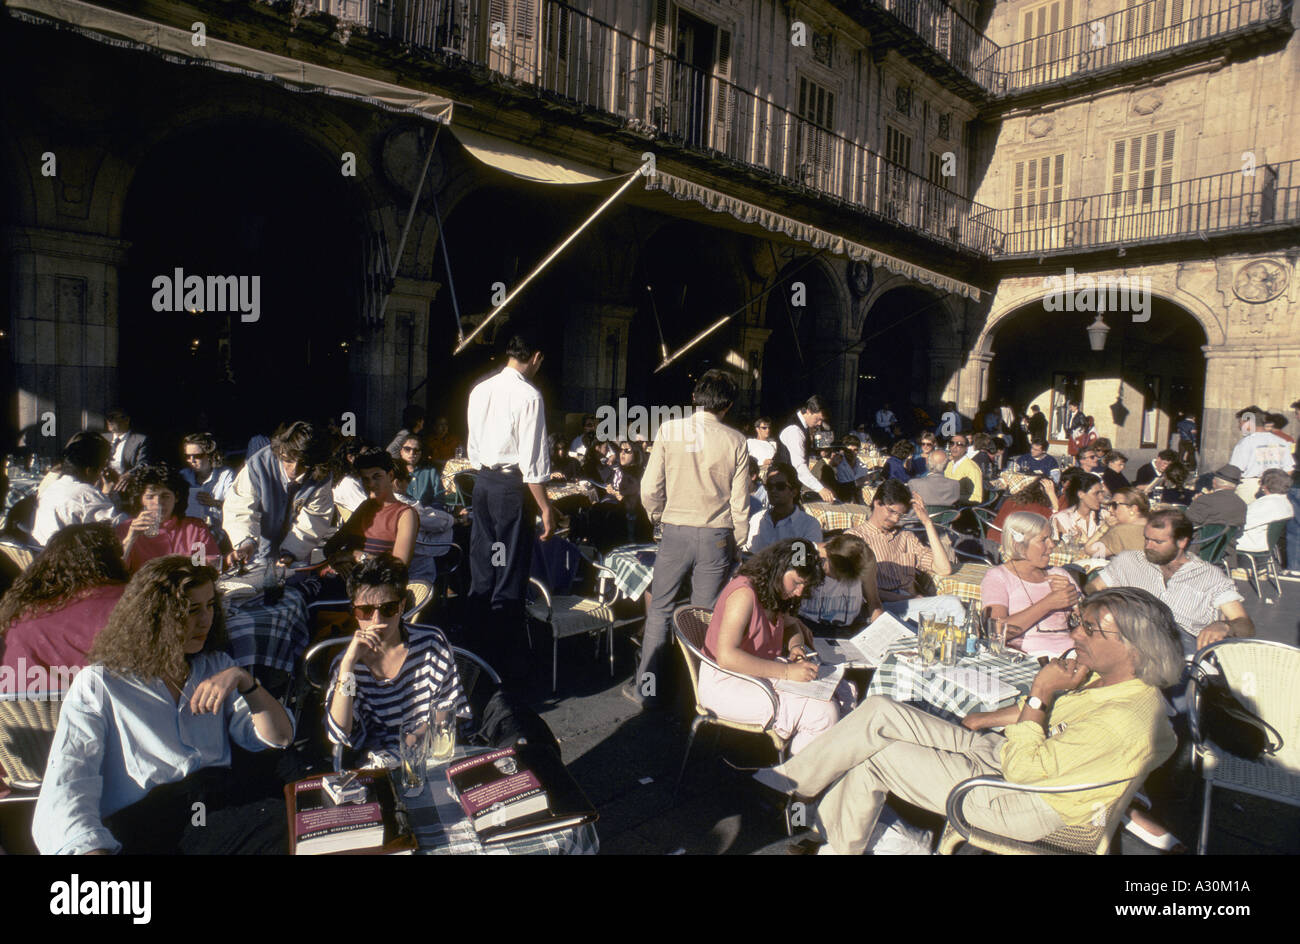 people sitting at tables chairs in crowded outdoor cafe salamanca piazza - Stock Image